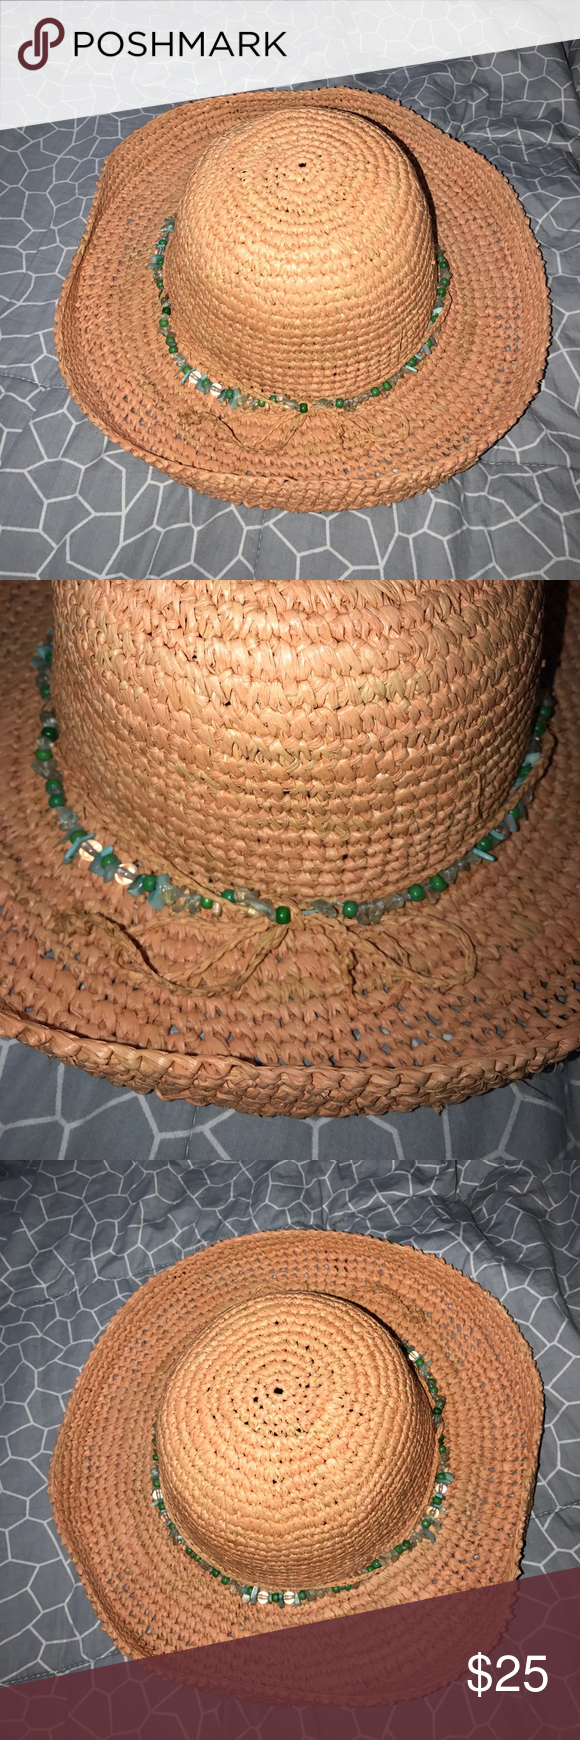 Scala 100% Straw Hat - One Size Fits Most Women s Scala 100% Straw Hat with  beaded accents! - One size fits most 0d725a811ce